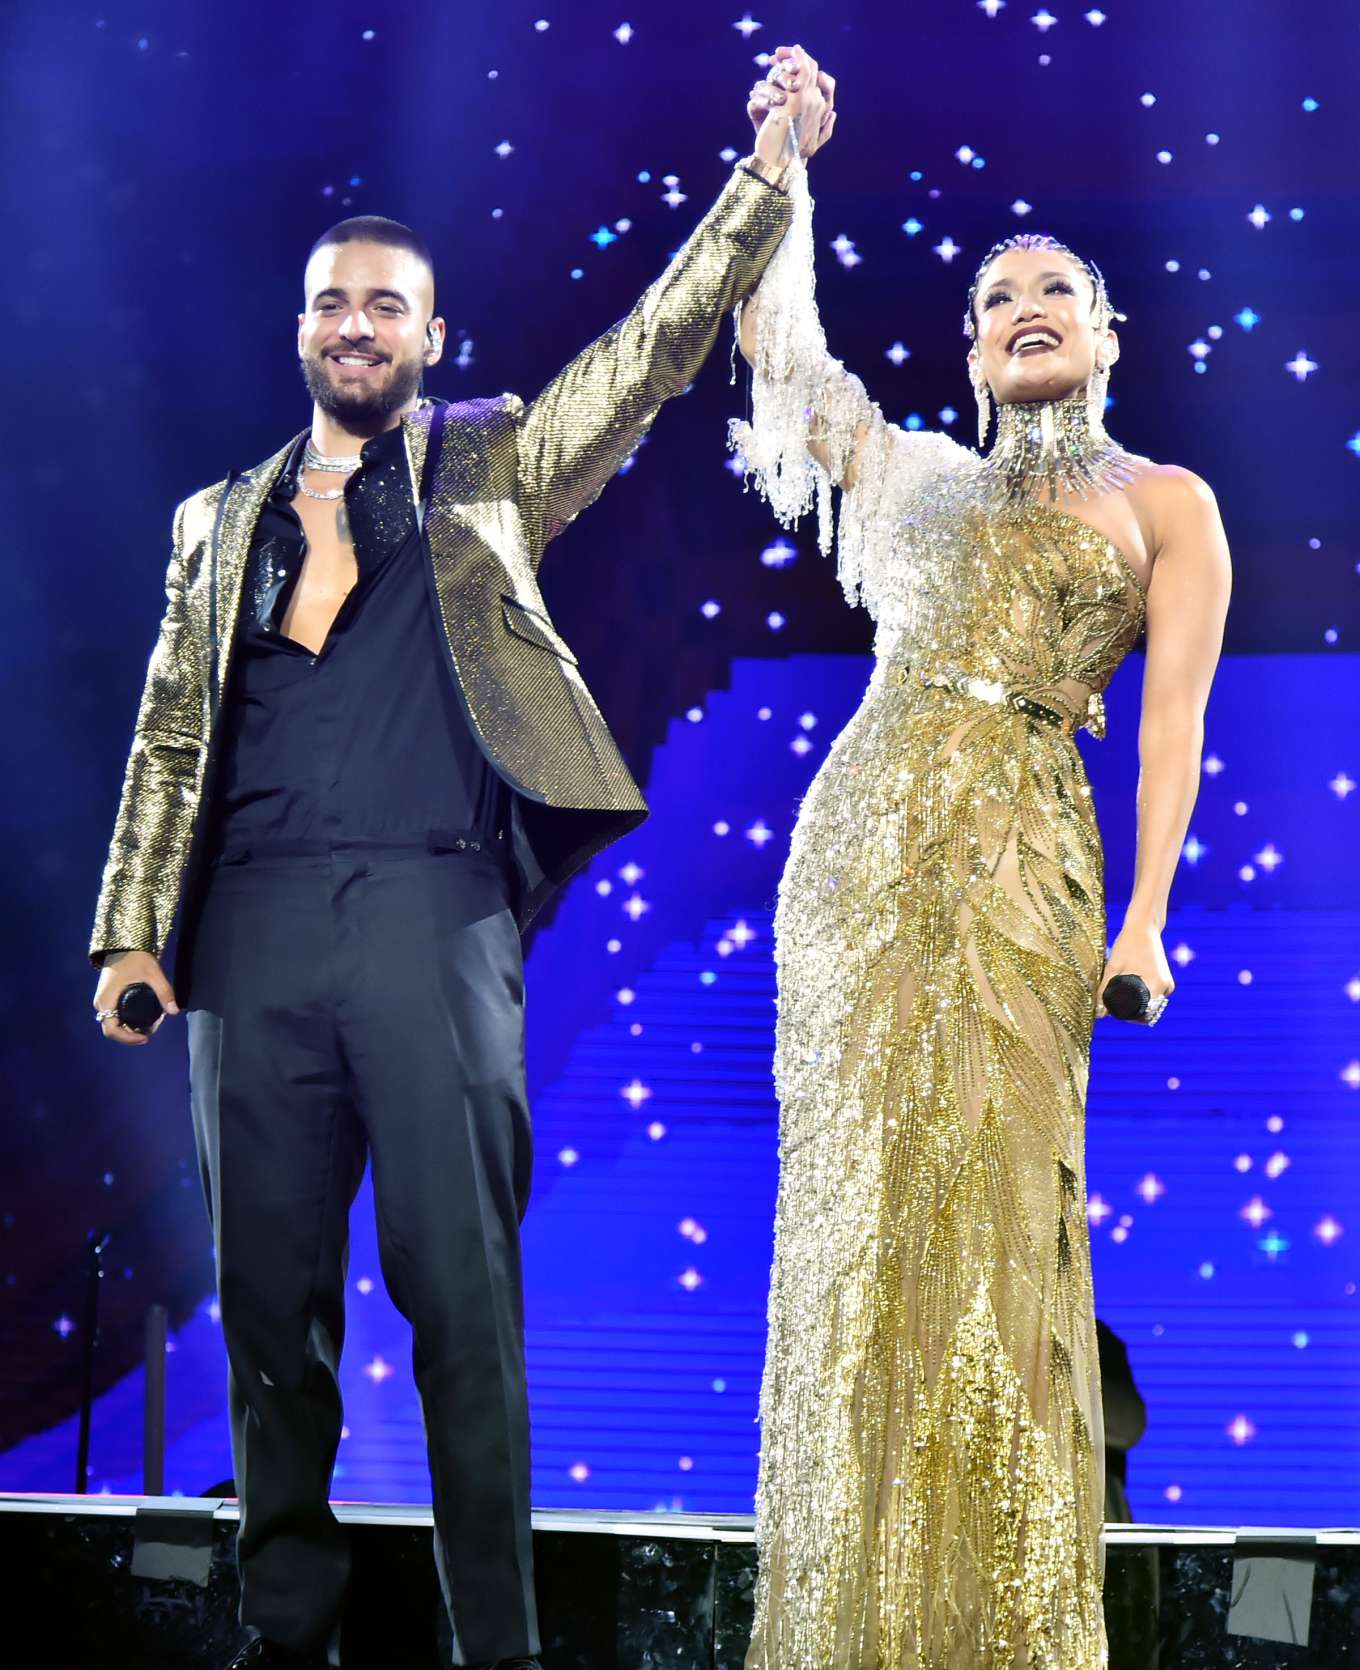 Jennifer Lopez joins Maluma onstage at Madison Square Garden in New York City